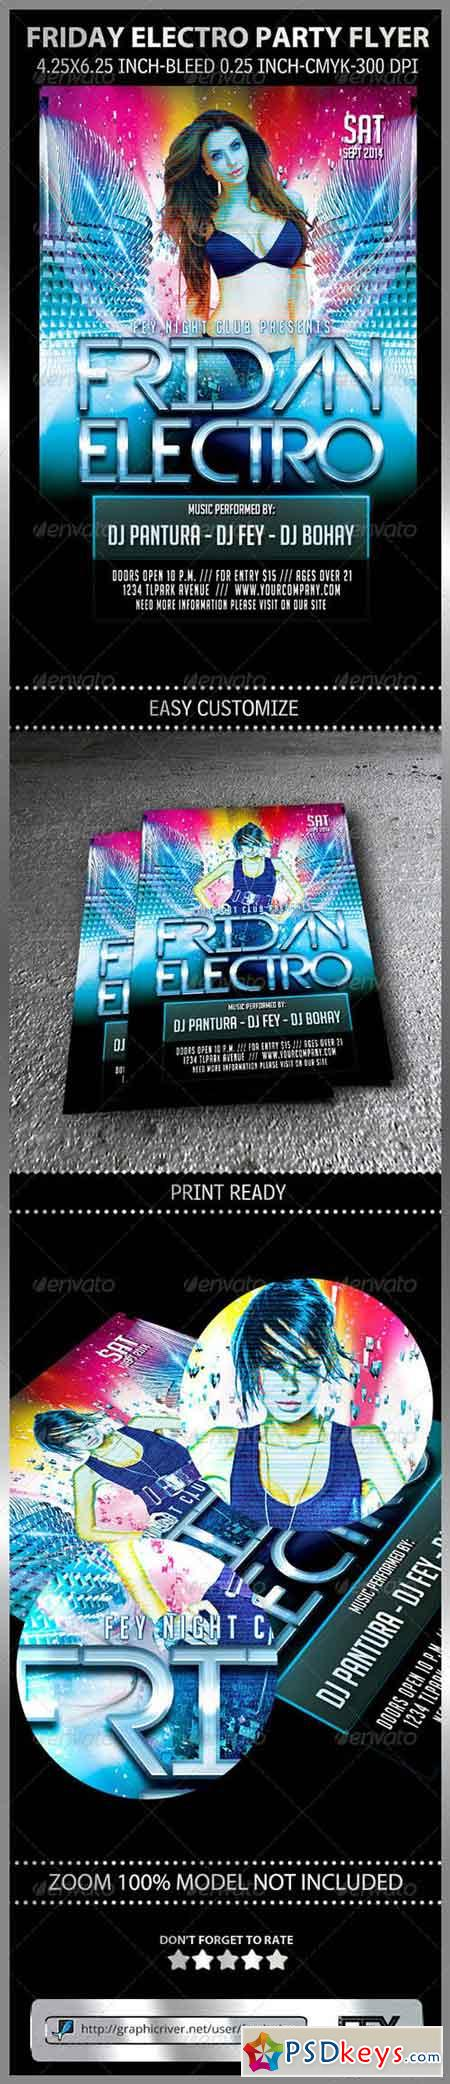 Friday Electro Party Flyer 8598113